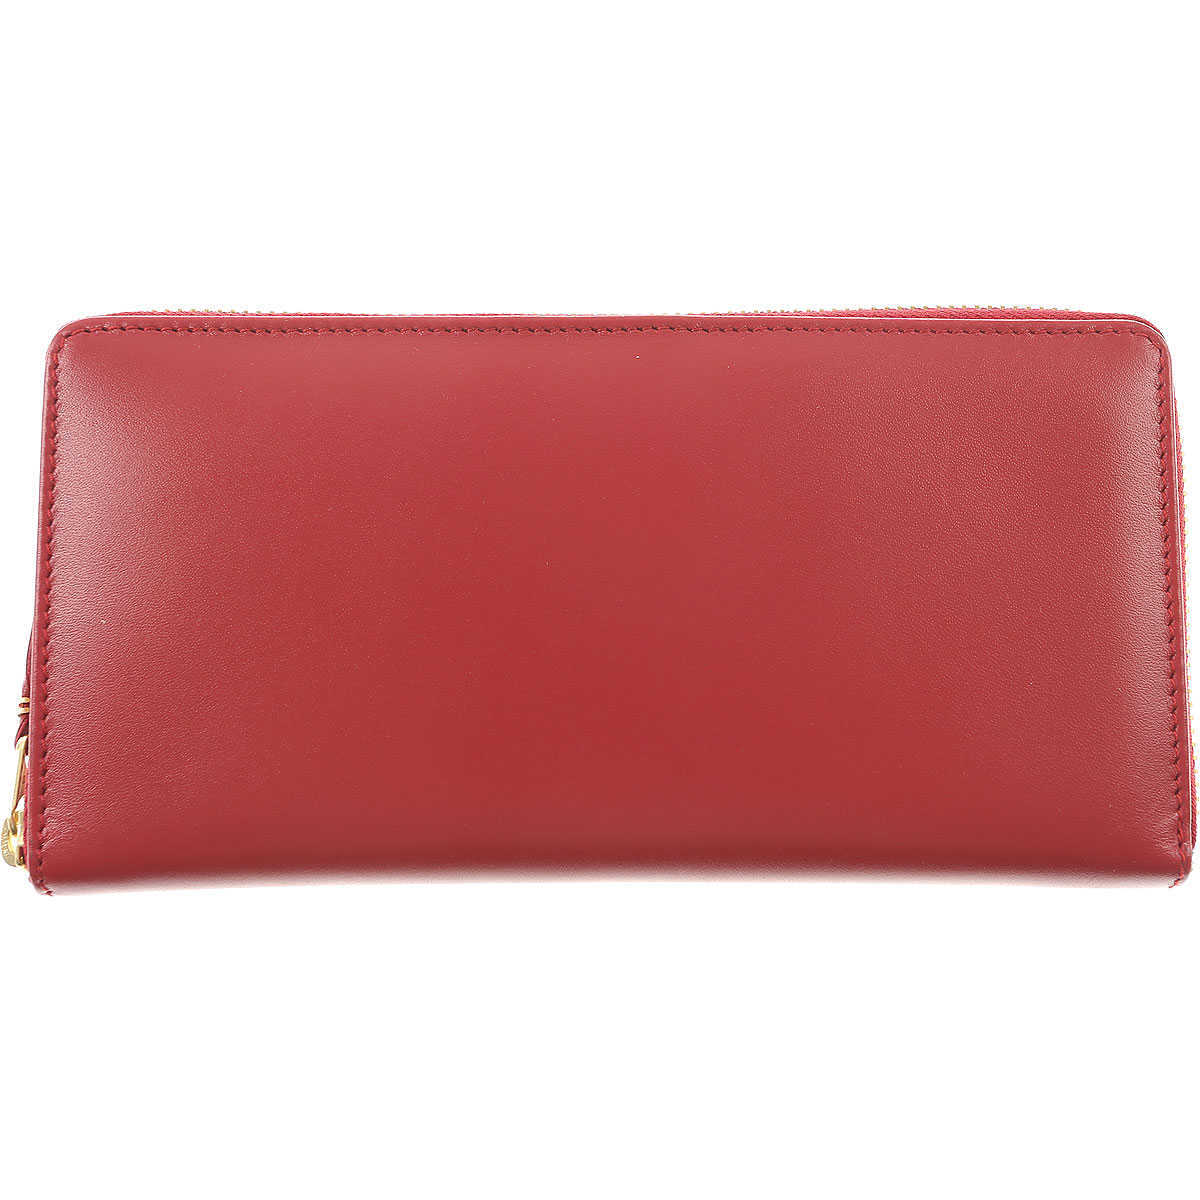 Comme des Garcons Wallet for Women Red - GOOFASH